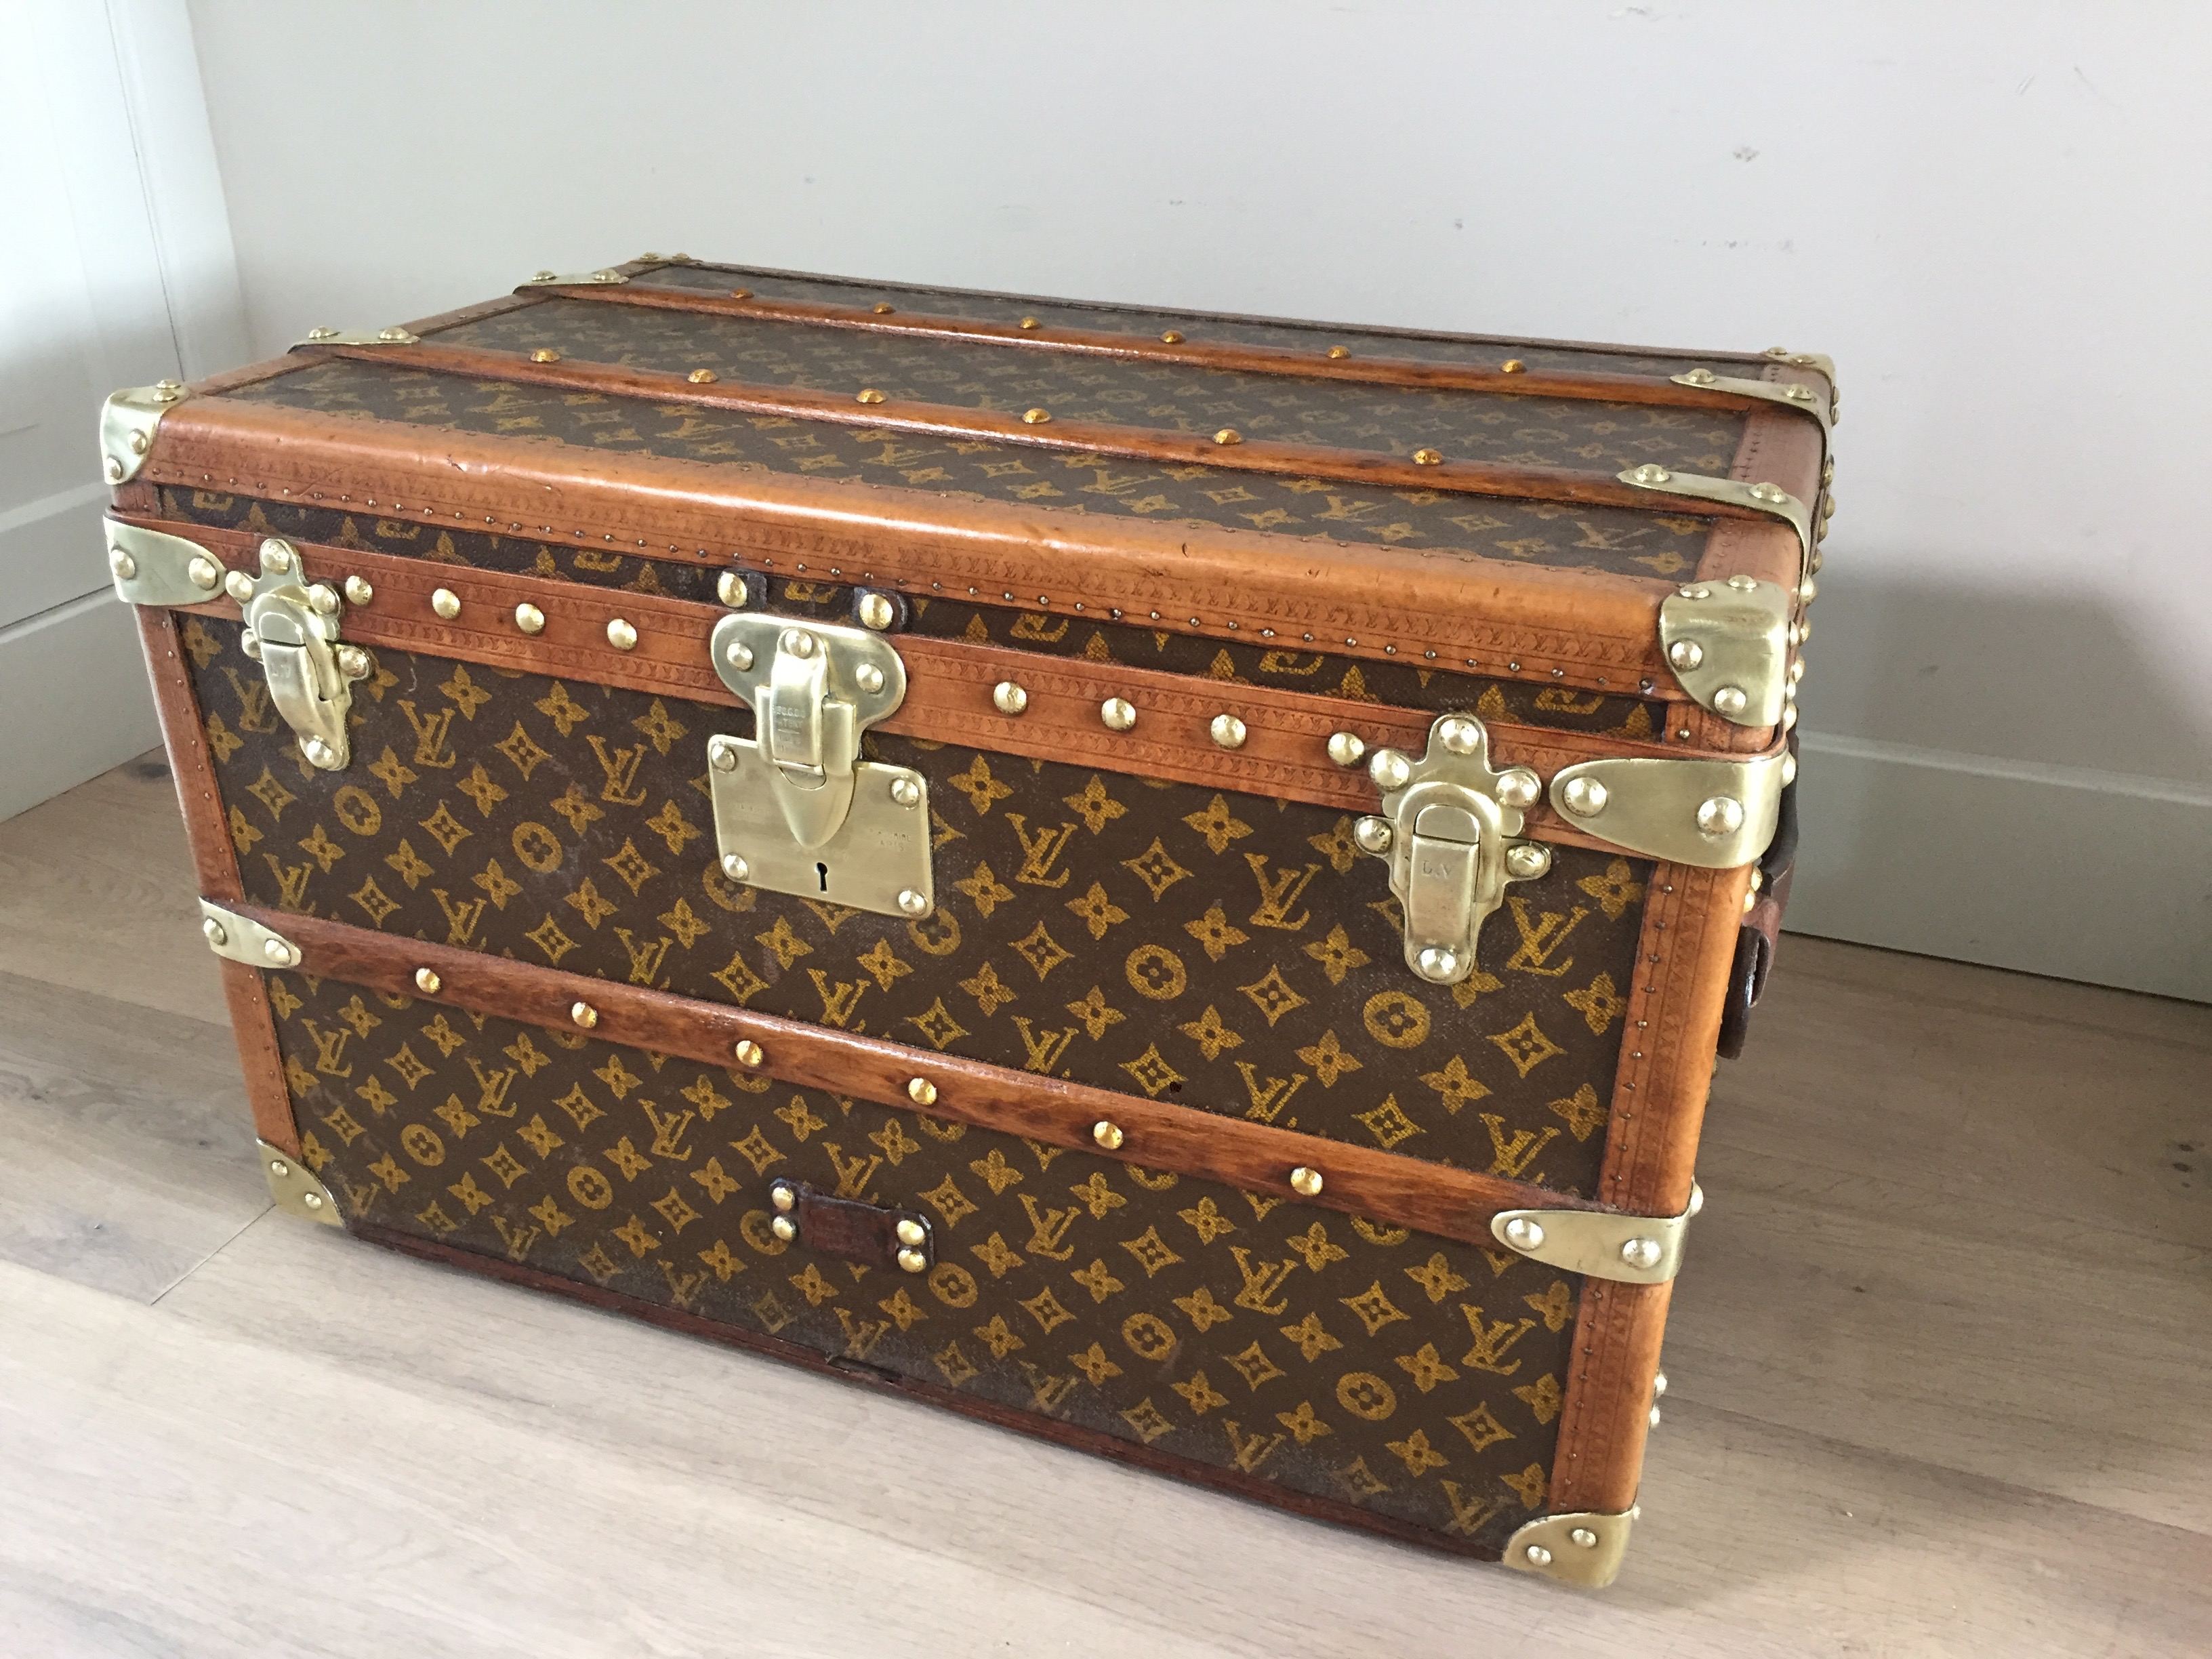 Antique Louis Vuitton Coffee Table Trunk Small Size Pinth Vintage Luggage